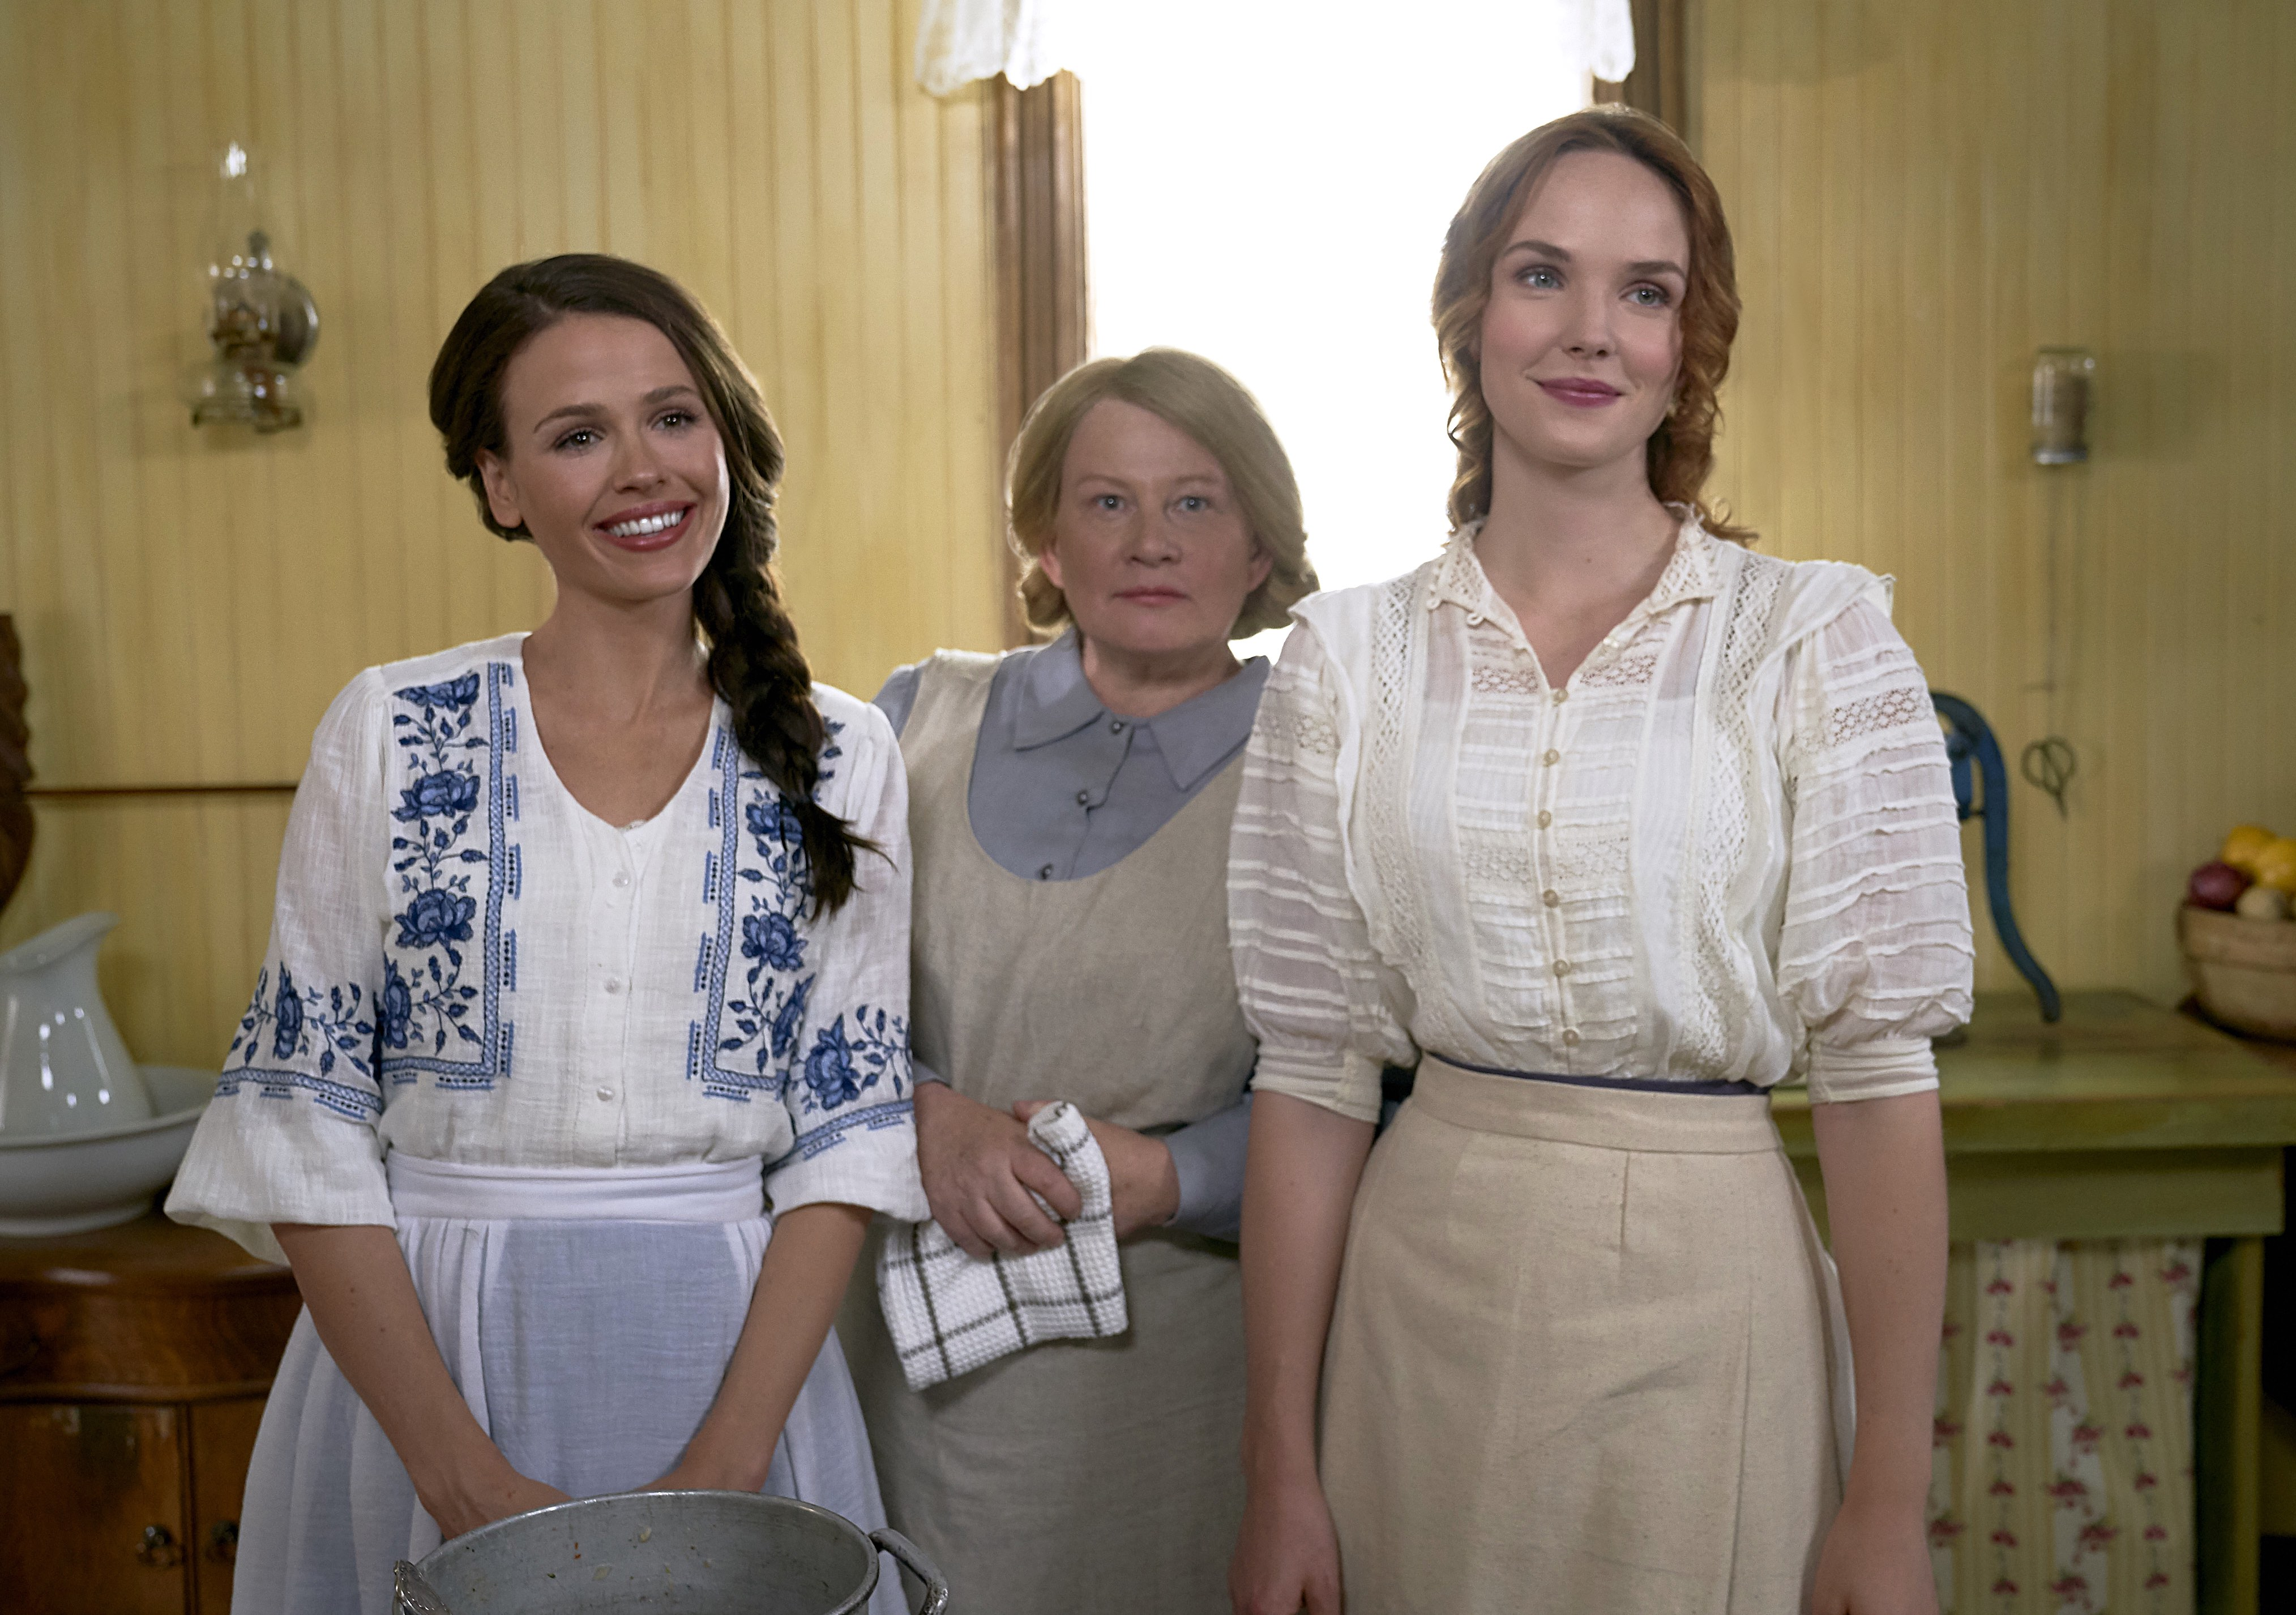 Grace and Lillian smiling with older woman in apron behind them in When Hope Calls